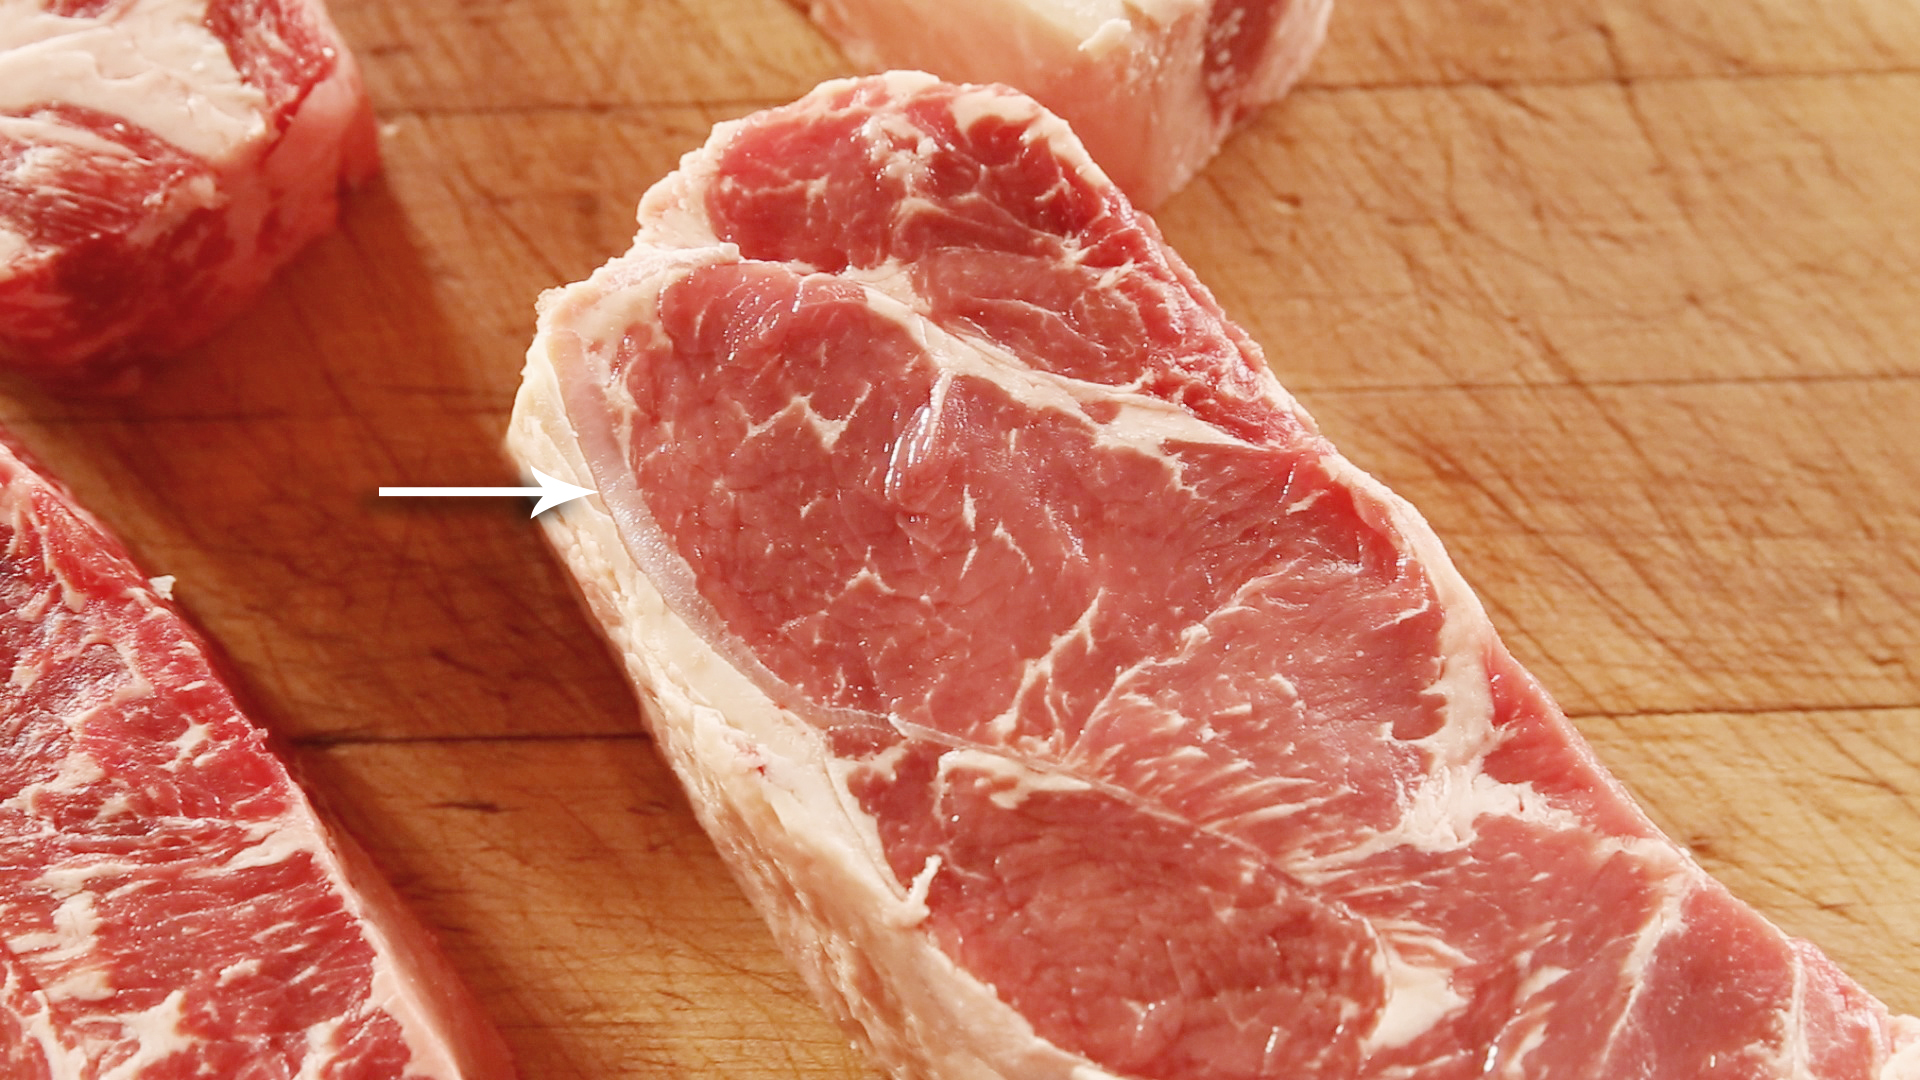 Removed Butchering ny strip with you